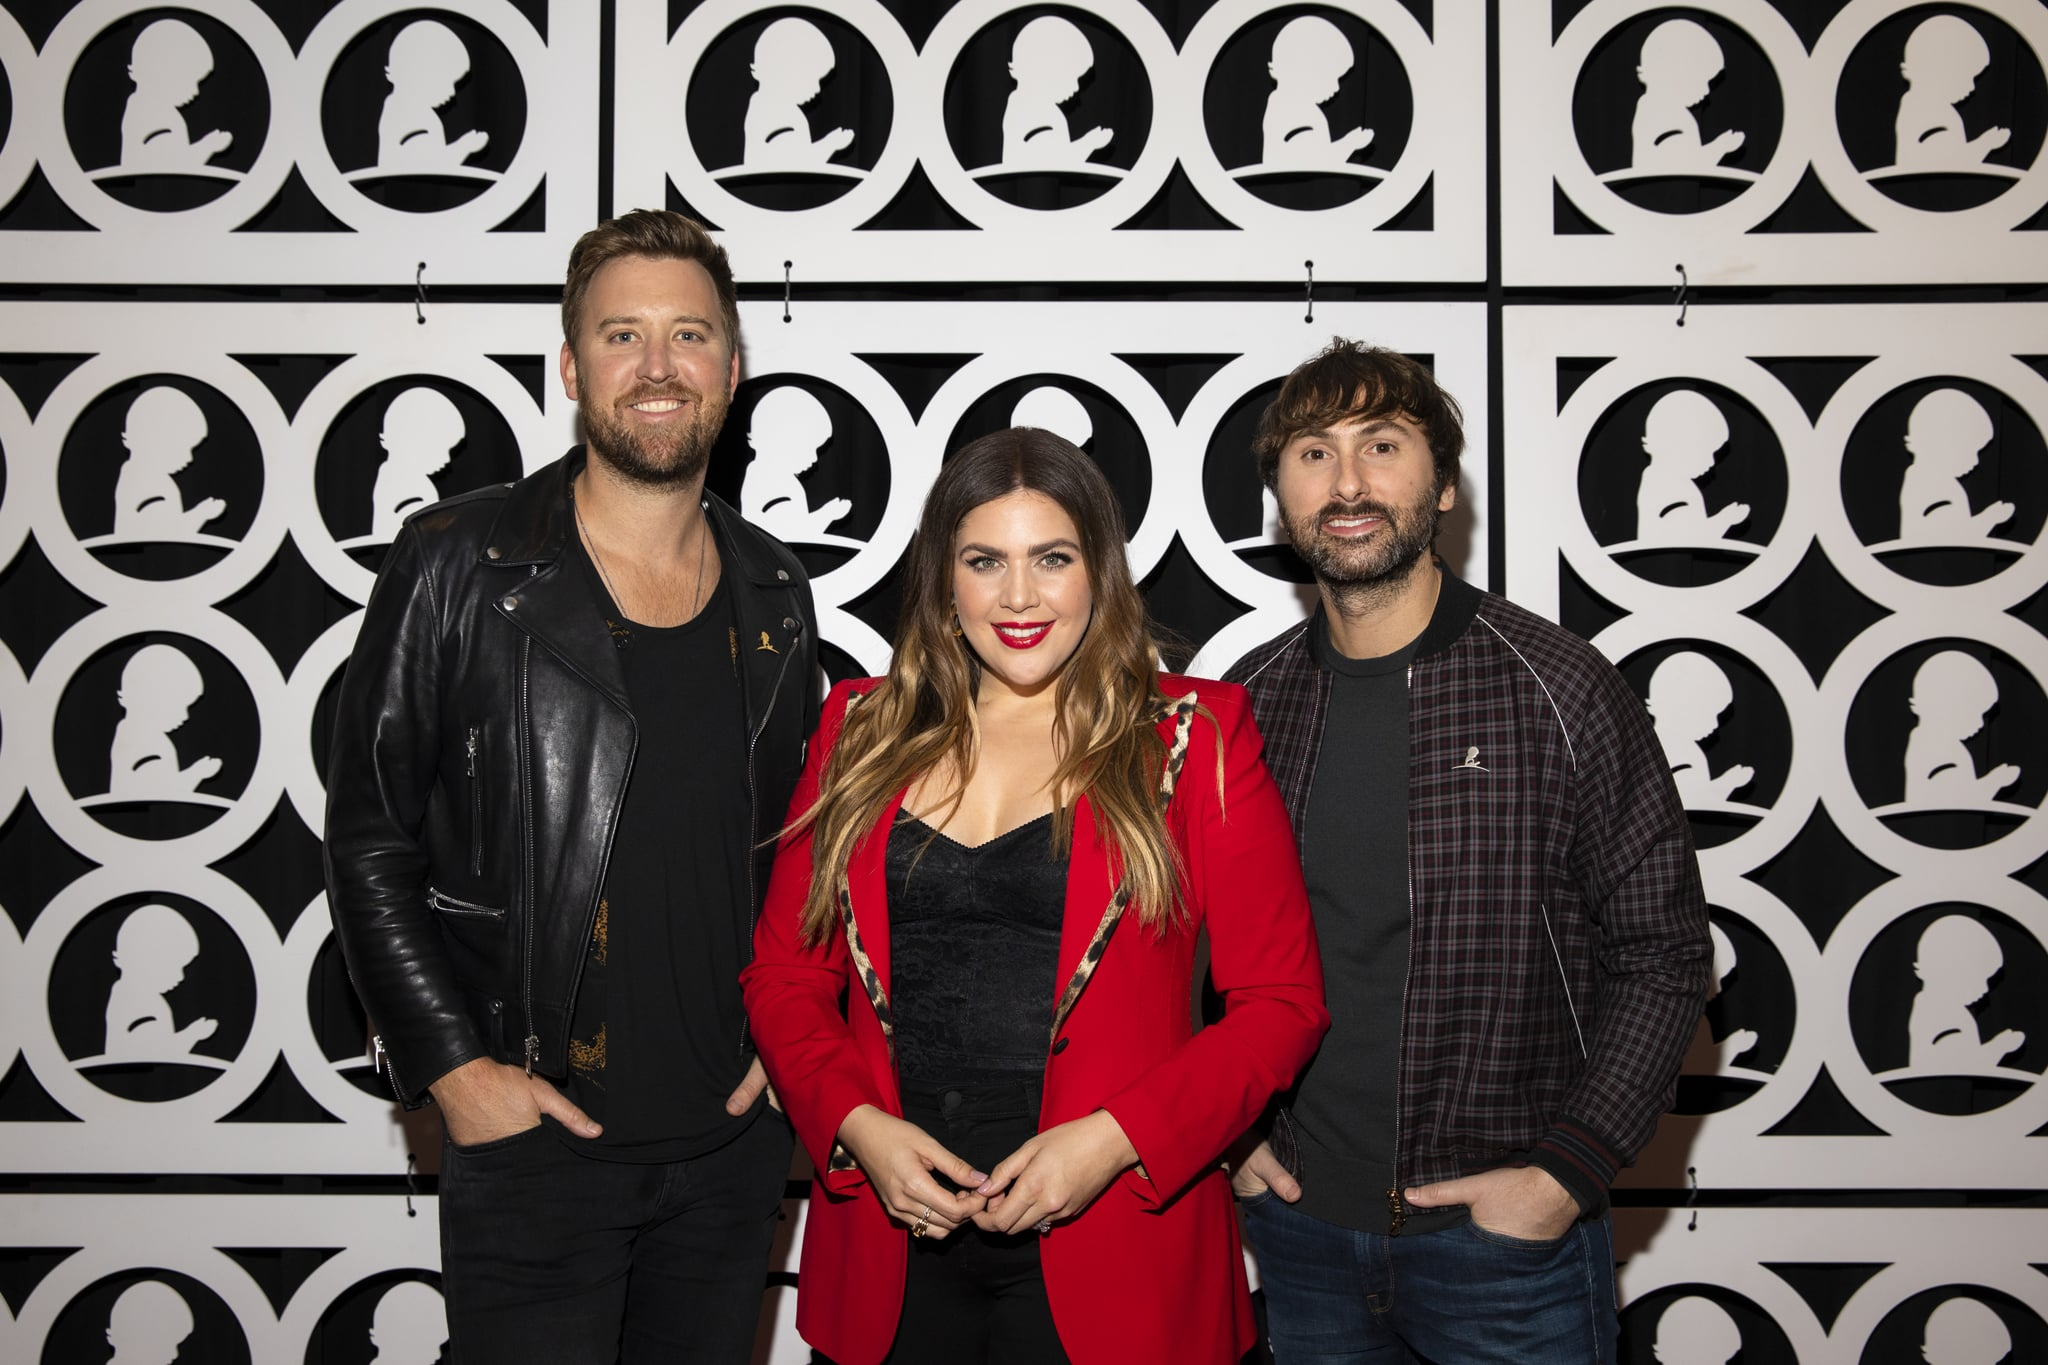 MEMPHIS, TN - JANUARY 17:  (L-R) Charles Kelley, Hillary Scott and Dave Haywood of Lady Antebellum attend the Country Cares for St. Jude Kids Seminar at The Peabody on January 17, 2020 in Memphis, Tennessee. (Photo by Brett Carlsen/Getty Images for St. Jude Children's Research Hospital)